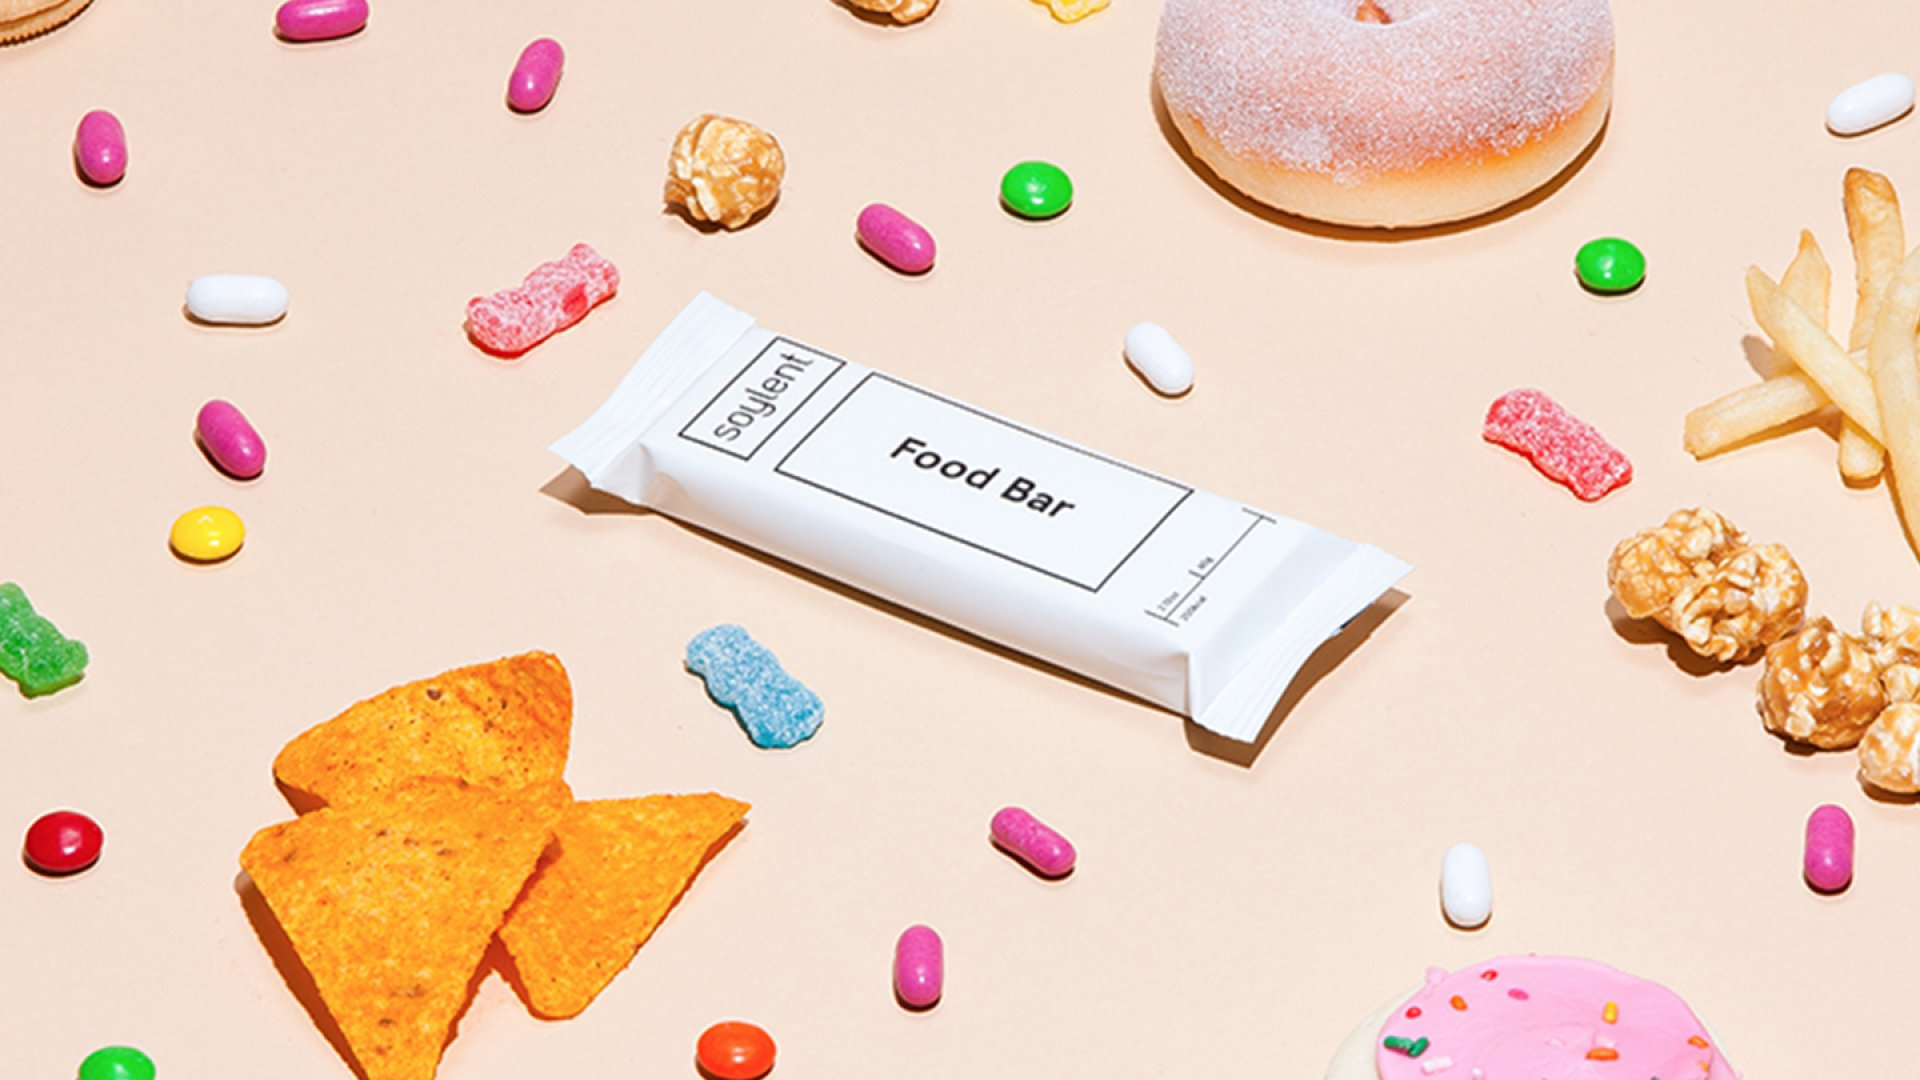 Customers have reported negative physical reactions to the Soylent Food Bar.